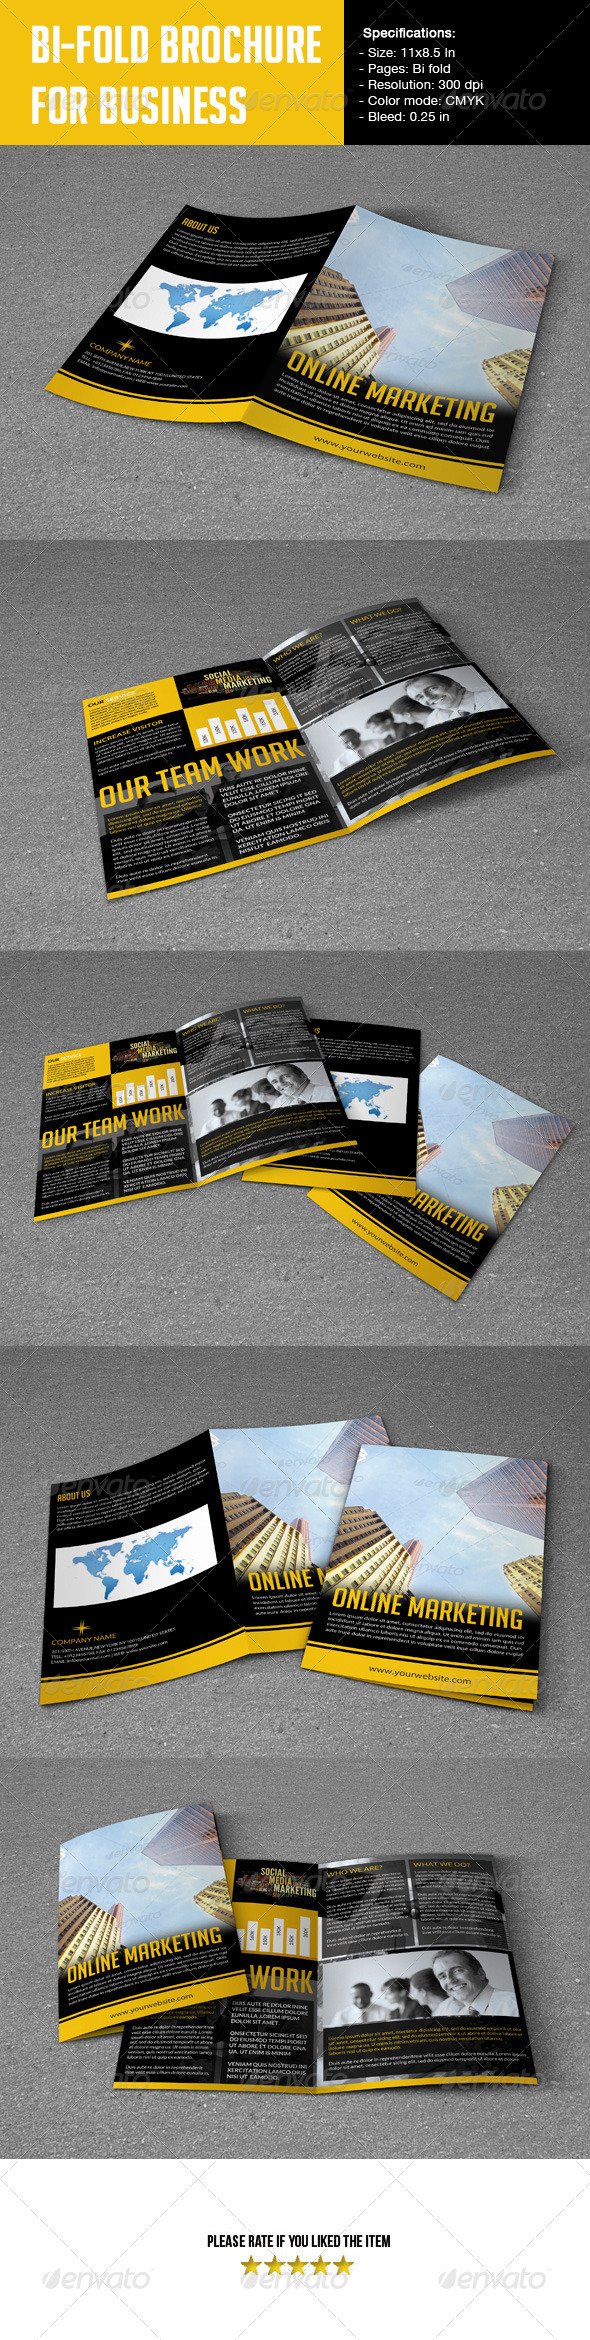 GraphicRiver Bifold Brochure For Business 5492417